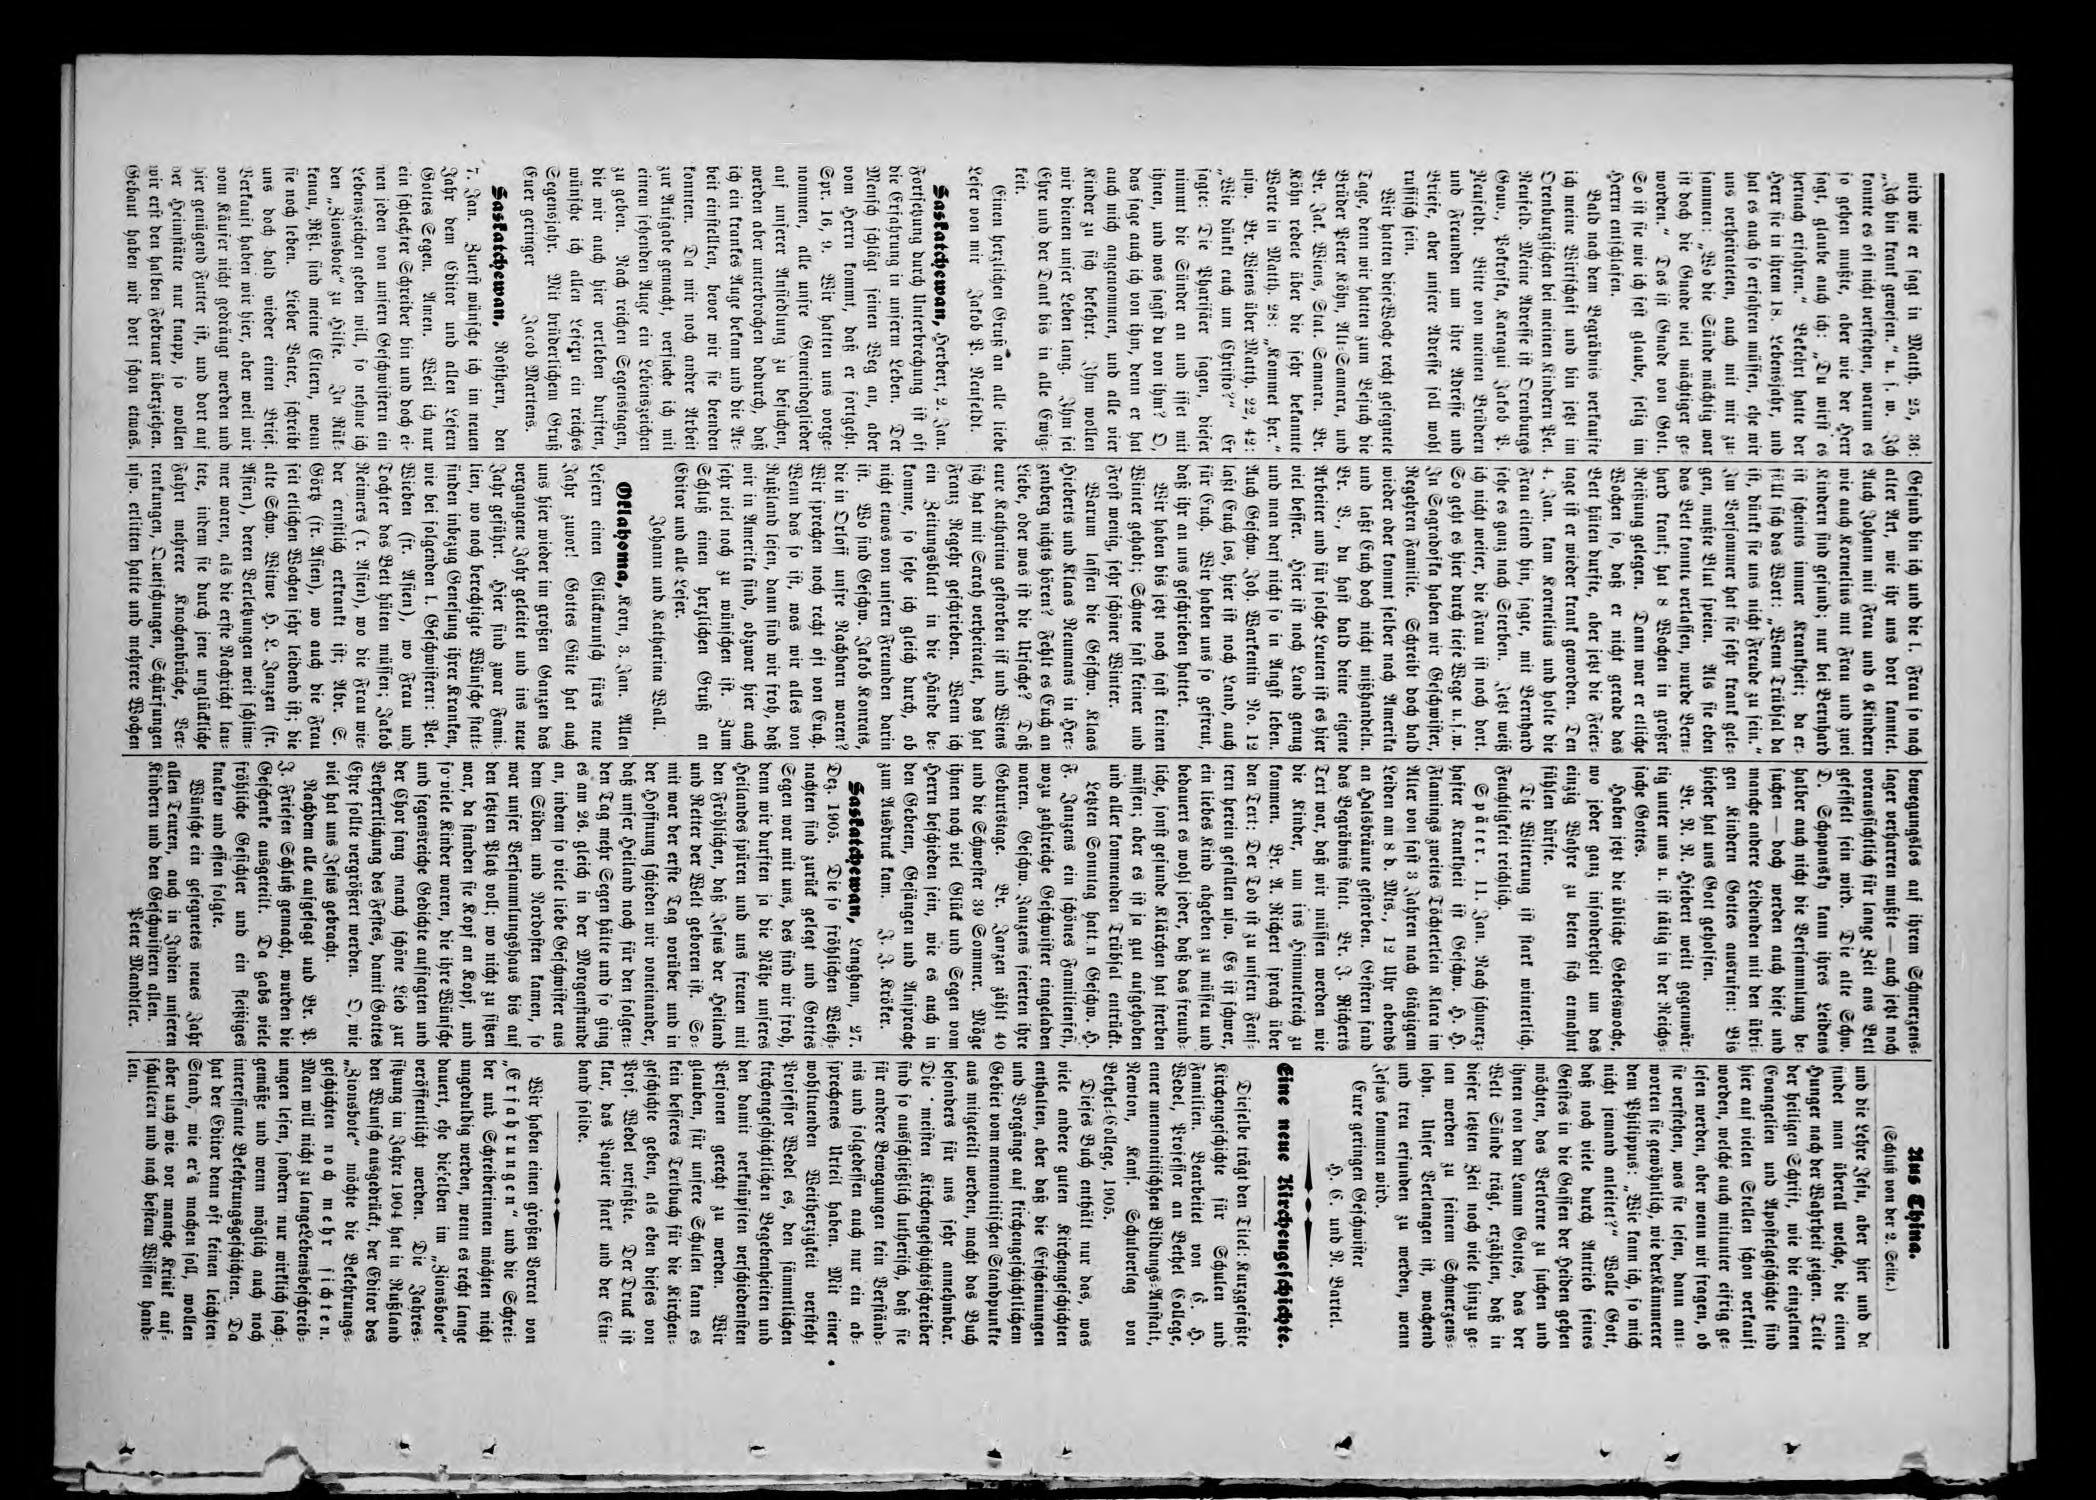 Zions--Bote. (Medford, Okla.), Vol. 22, No. 3, Ed. 1 Wednesday, January 17, 1906                                                                                                      [Sequence #]: 8 of 8